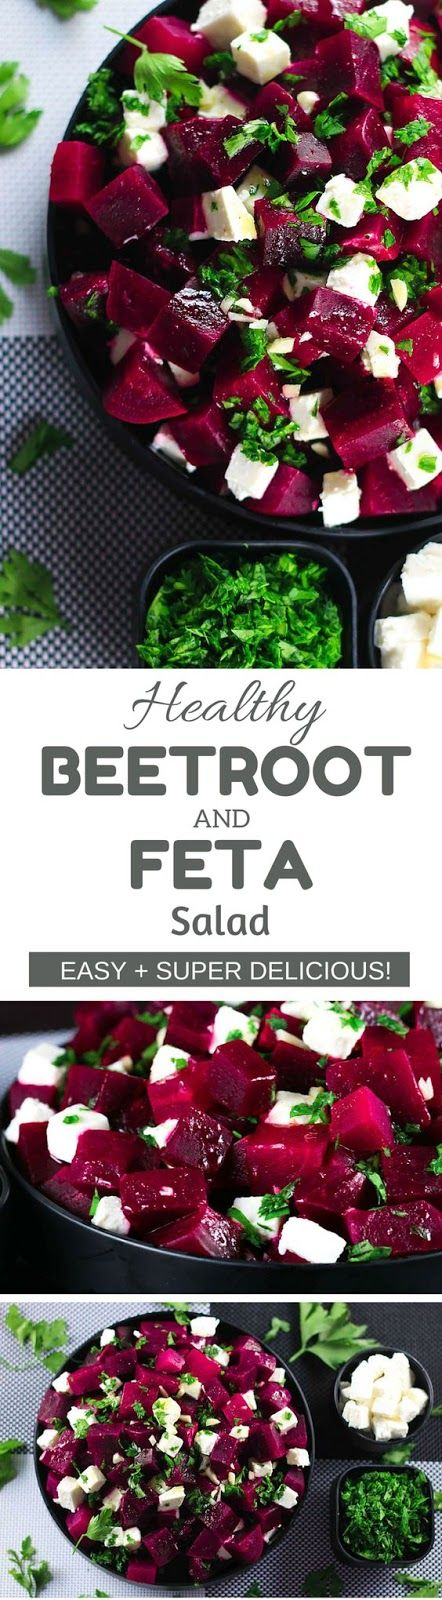 BEETROOT AND FETA CHEESE SALAD | Cake And Food Recipe